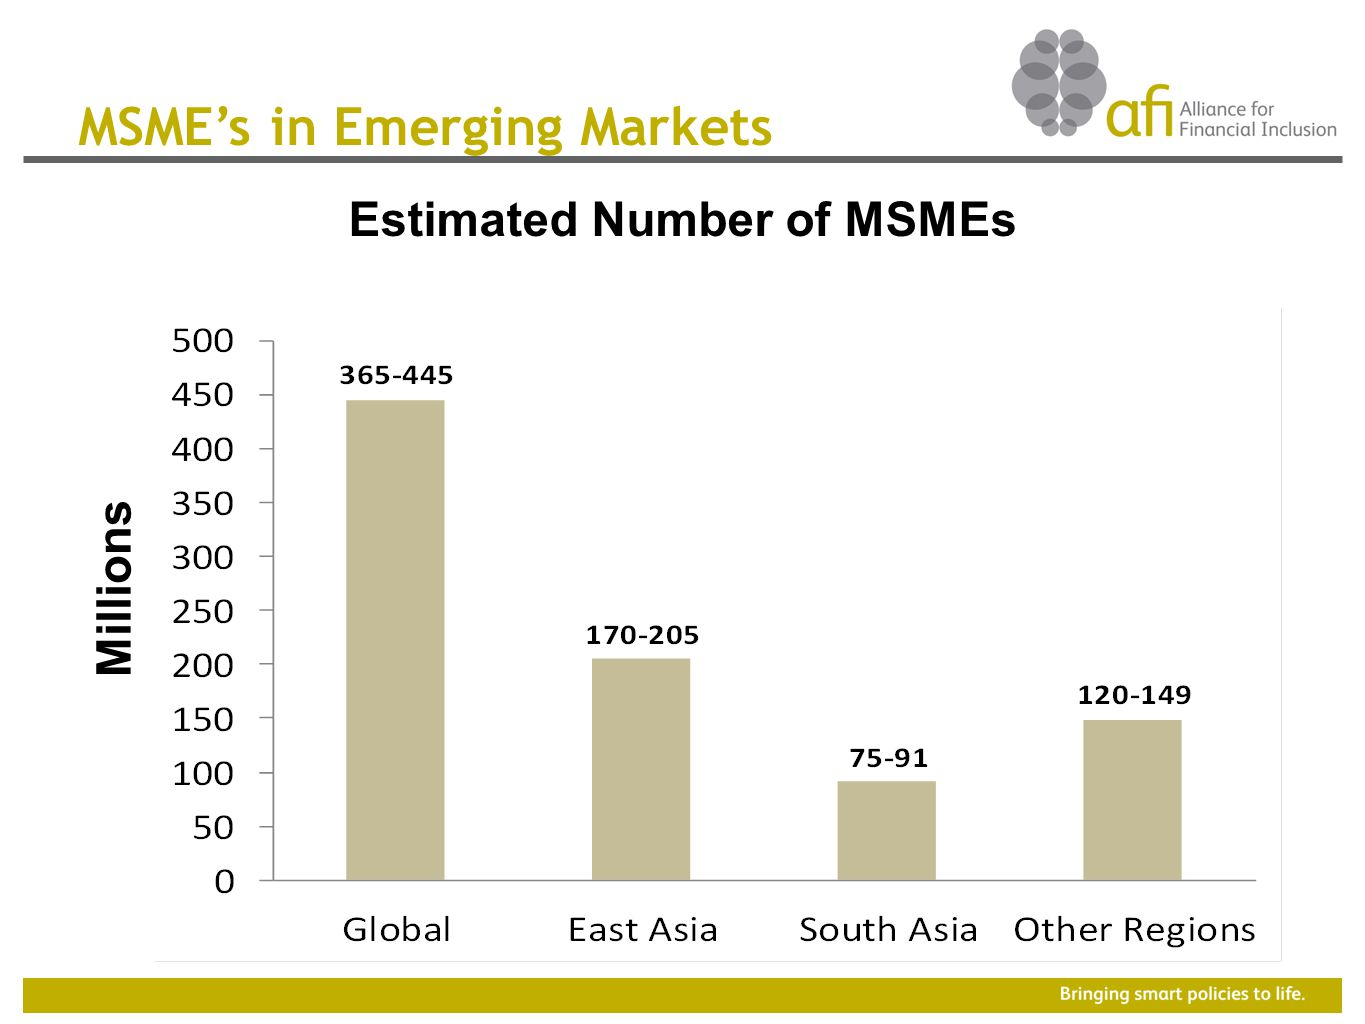 MSME's in Emerging Markets Estimated Number of MSMEs Millions